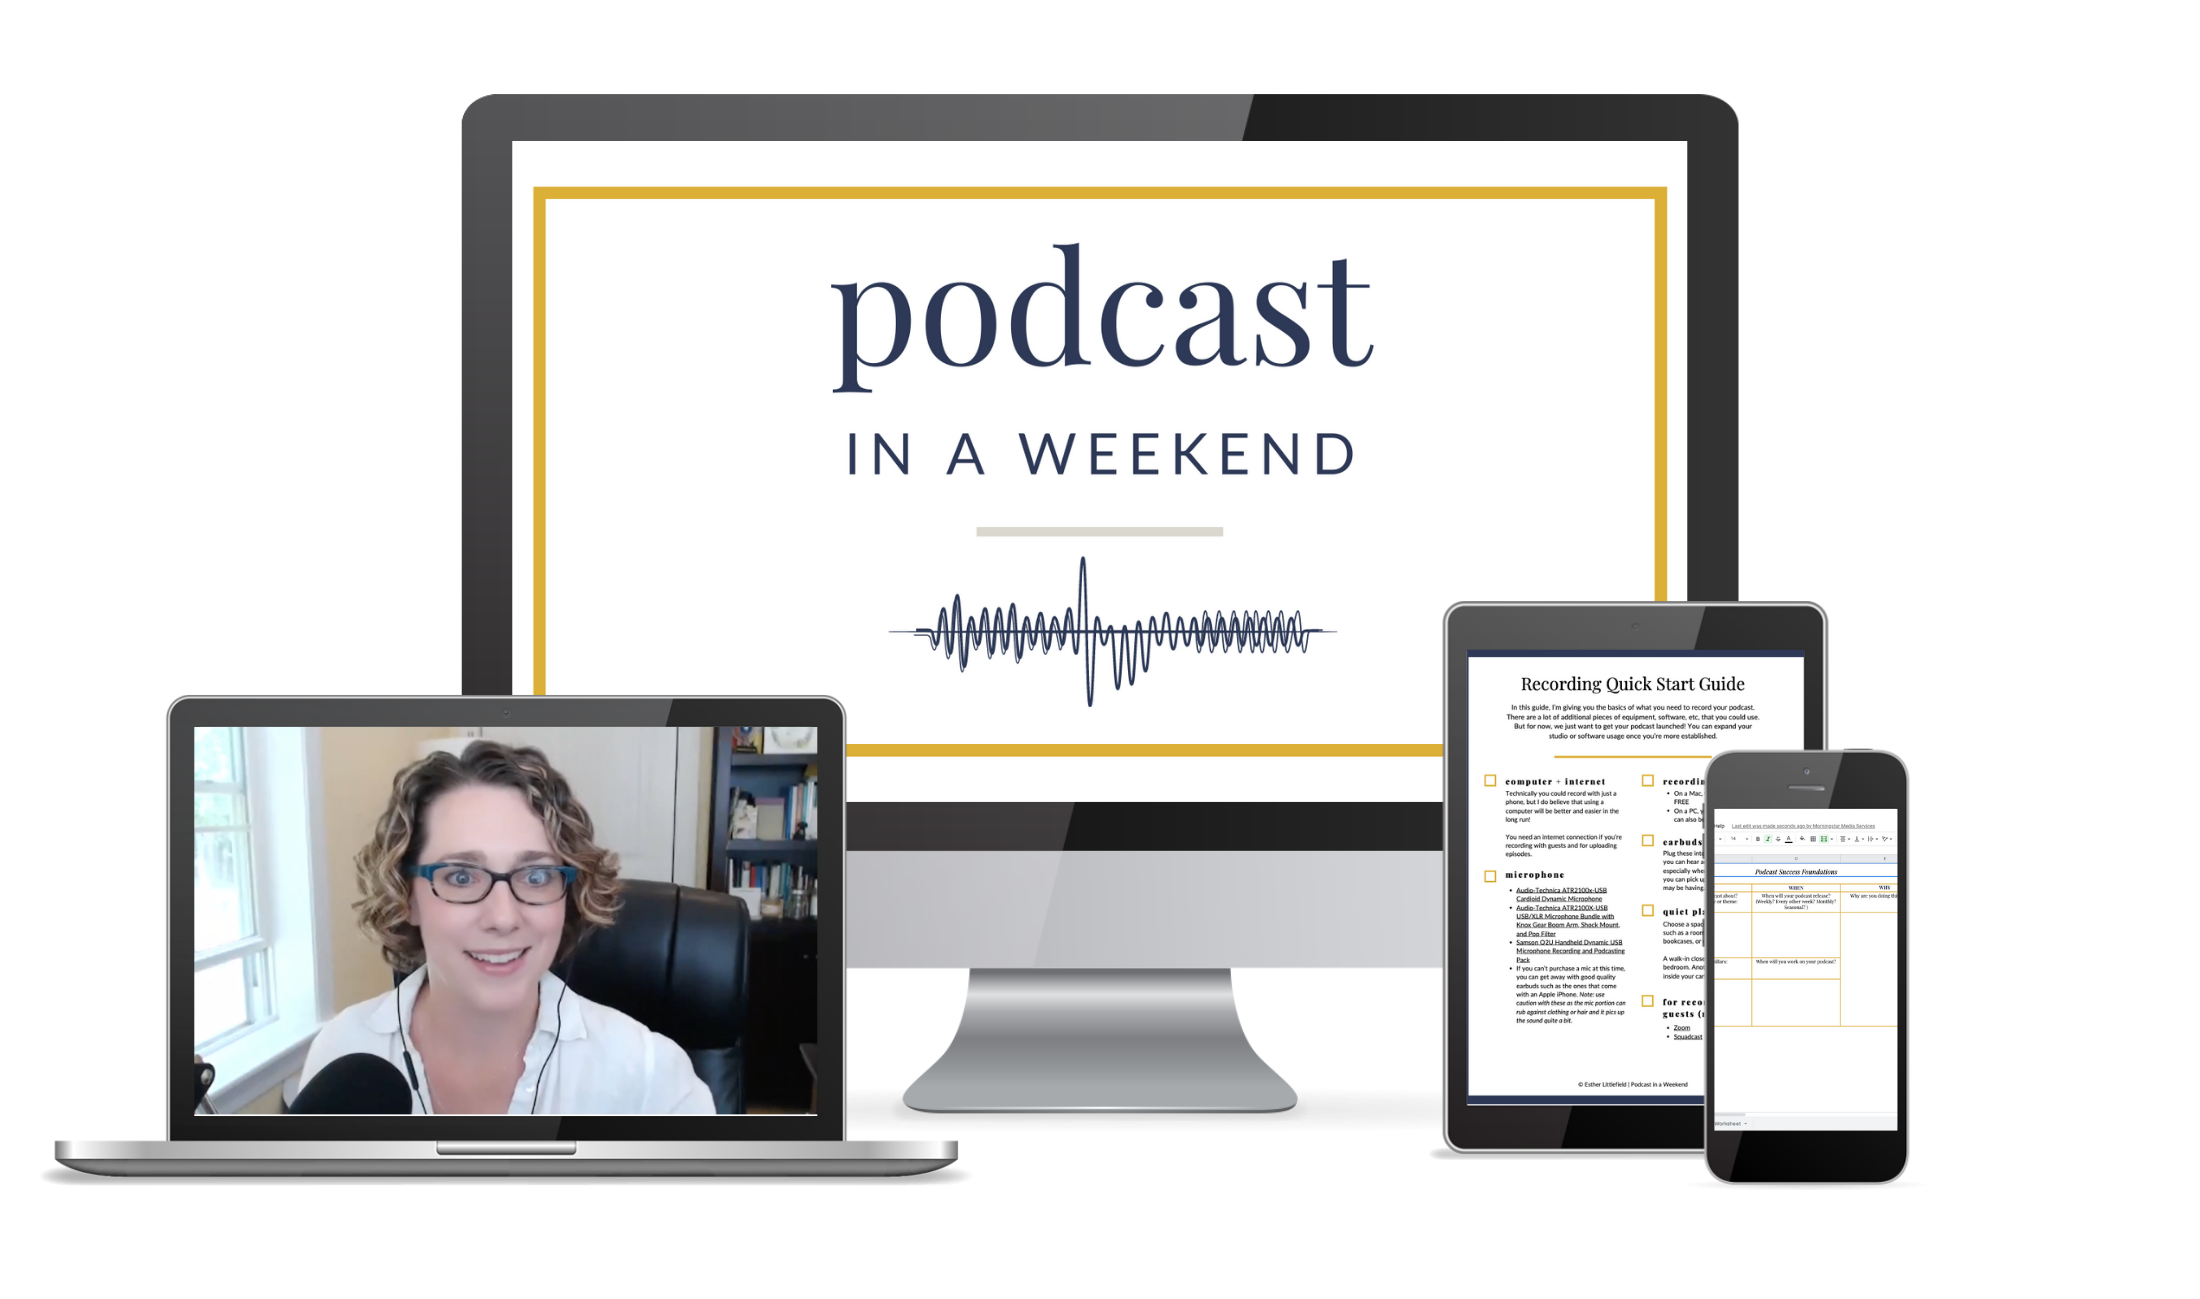 Podcast in a weekend mini-course